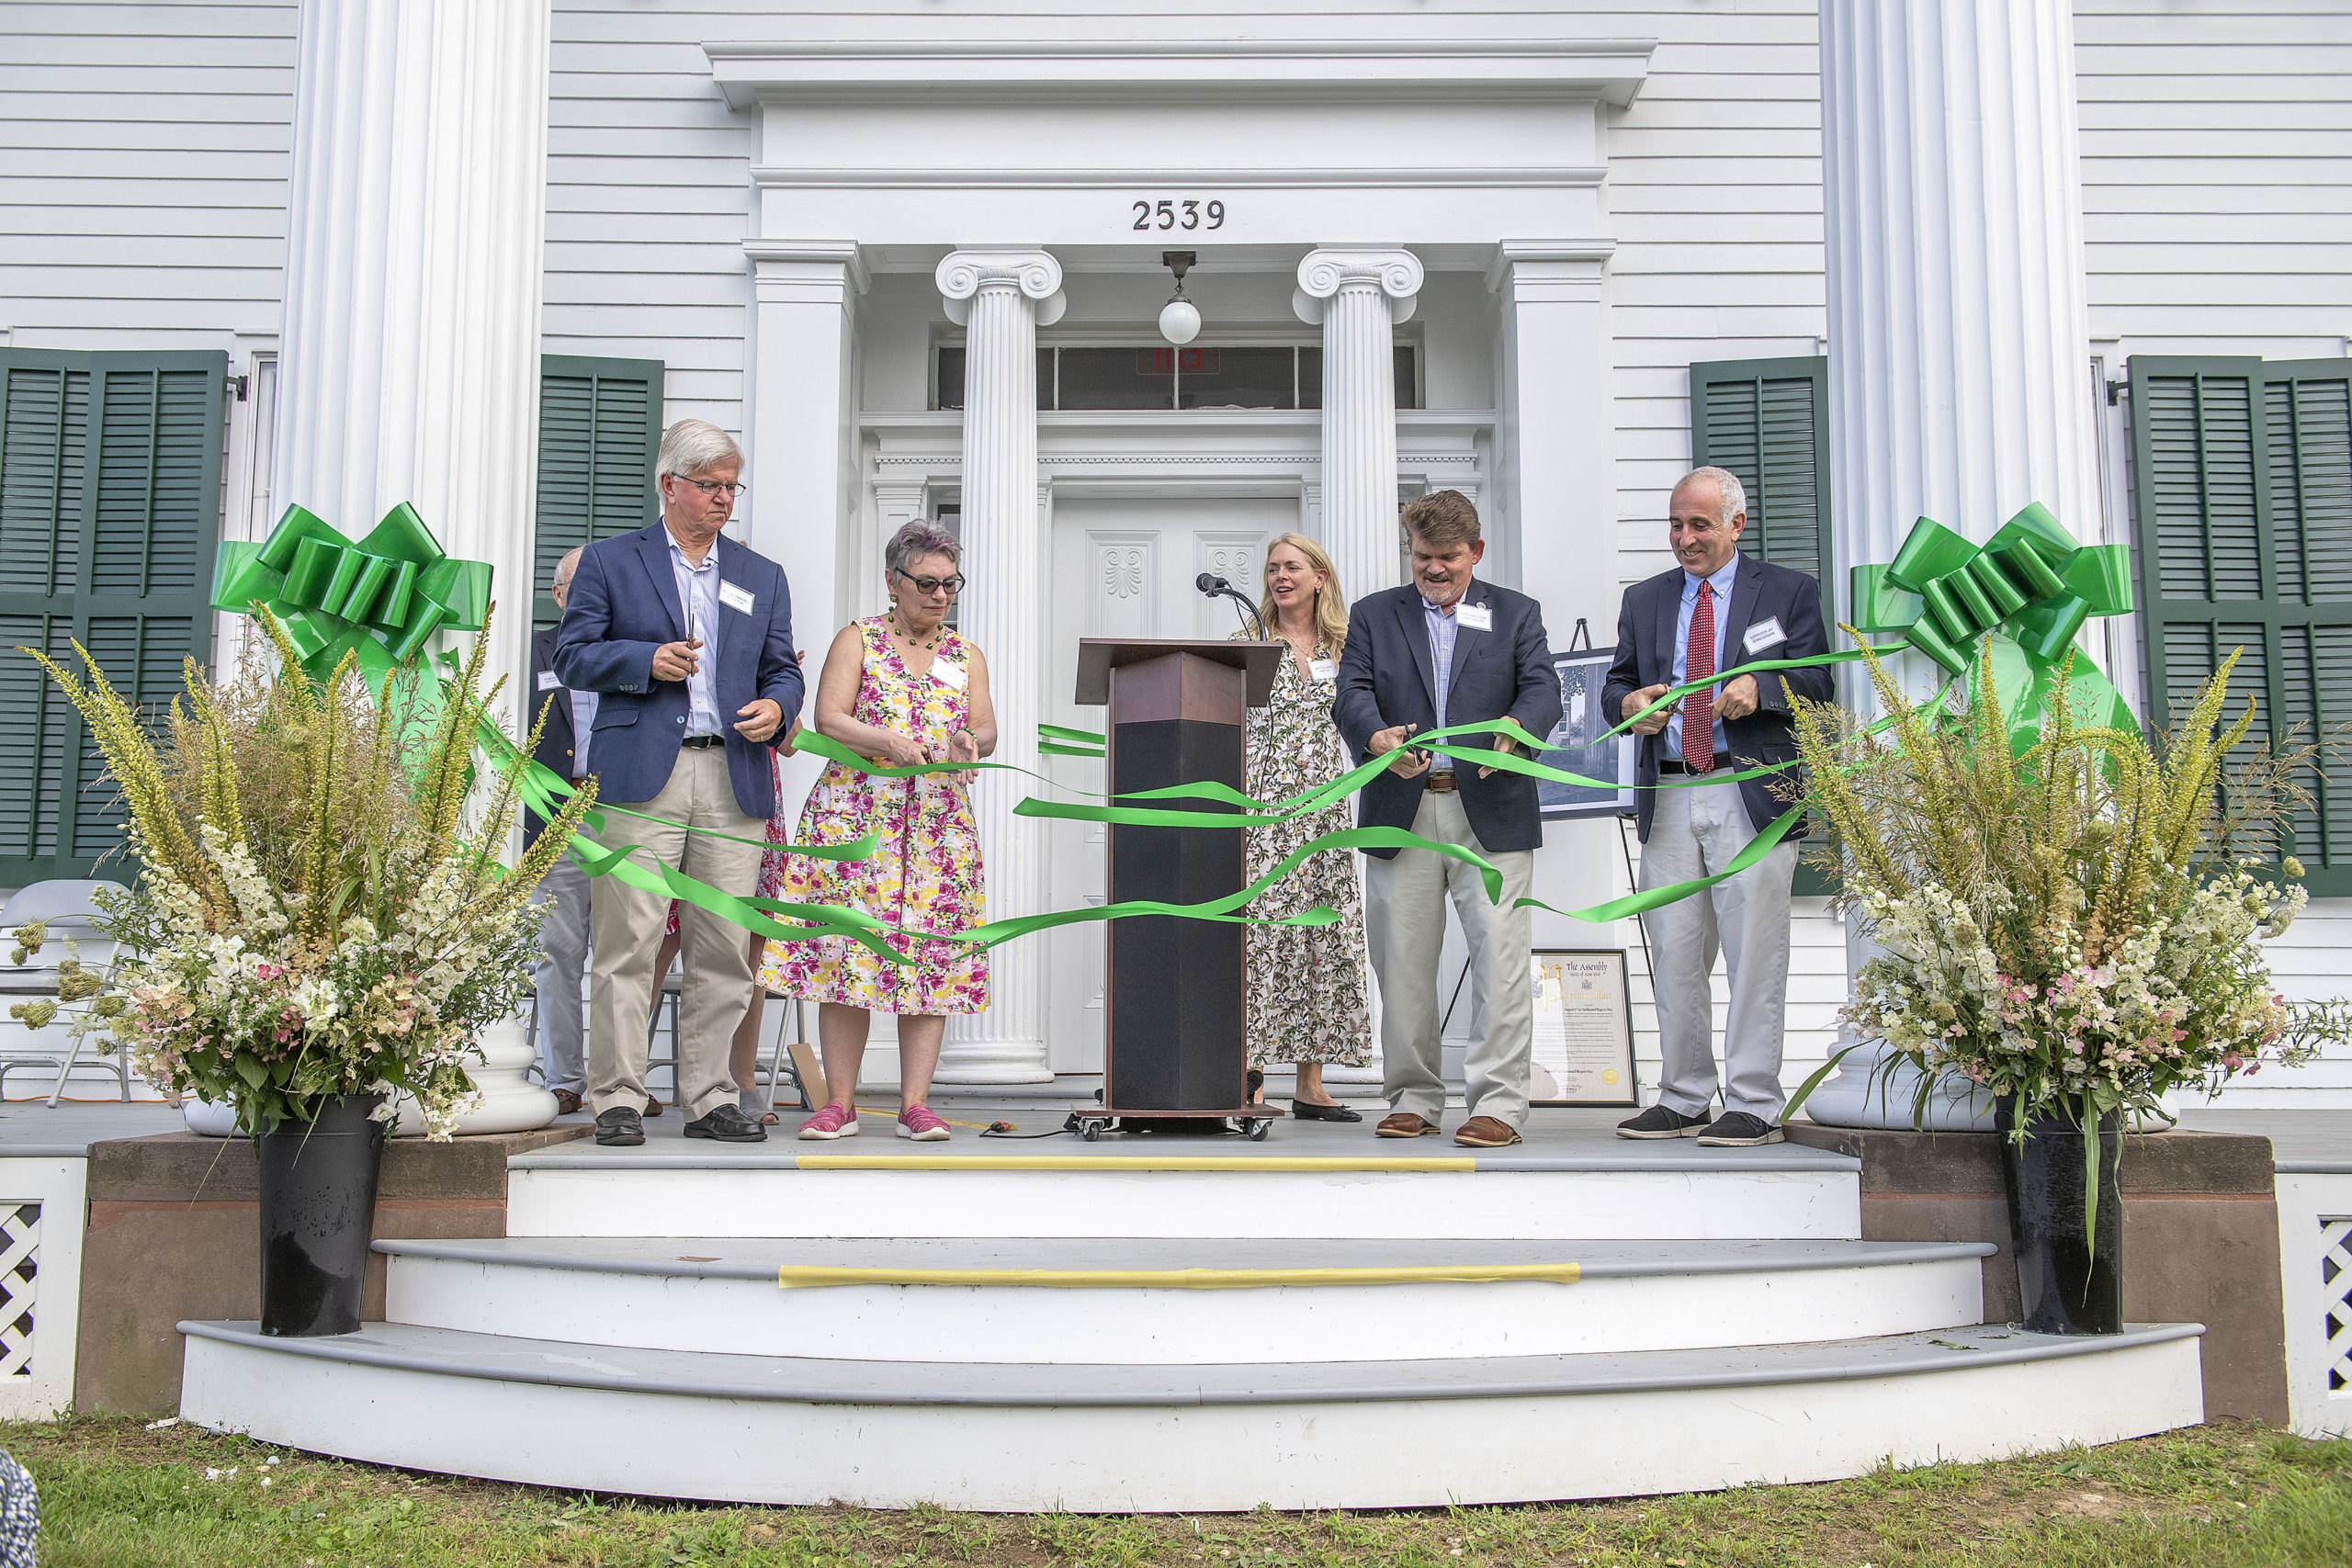 New York State Assemblyman Fred Thiele, Community Preservation Fund Manager Lisa Kombrink, Southampton Town Board Board Member Tommy John Schiavoni and Southampton Town Supervisor Jay Schneiderman cut the ribbon(s) during a ceremony that was held to inaugurate the new, completely refurbished Nathaniel Rogers House at the corner of Ocean Road and Montauk Highway on Sunday.   MICHAEL HELLER